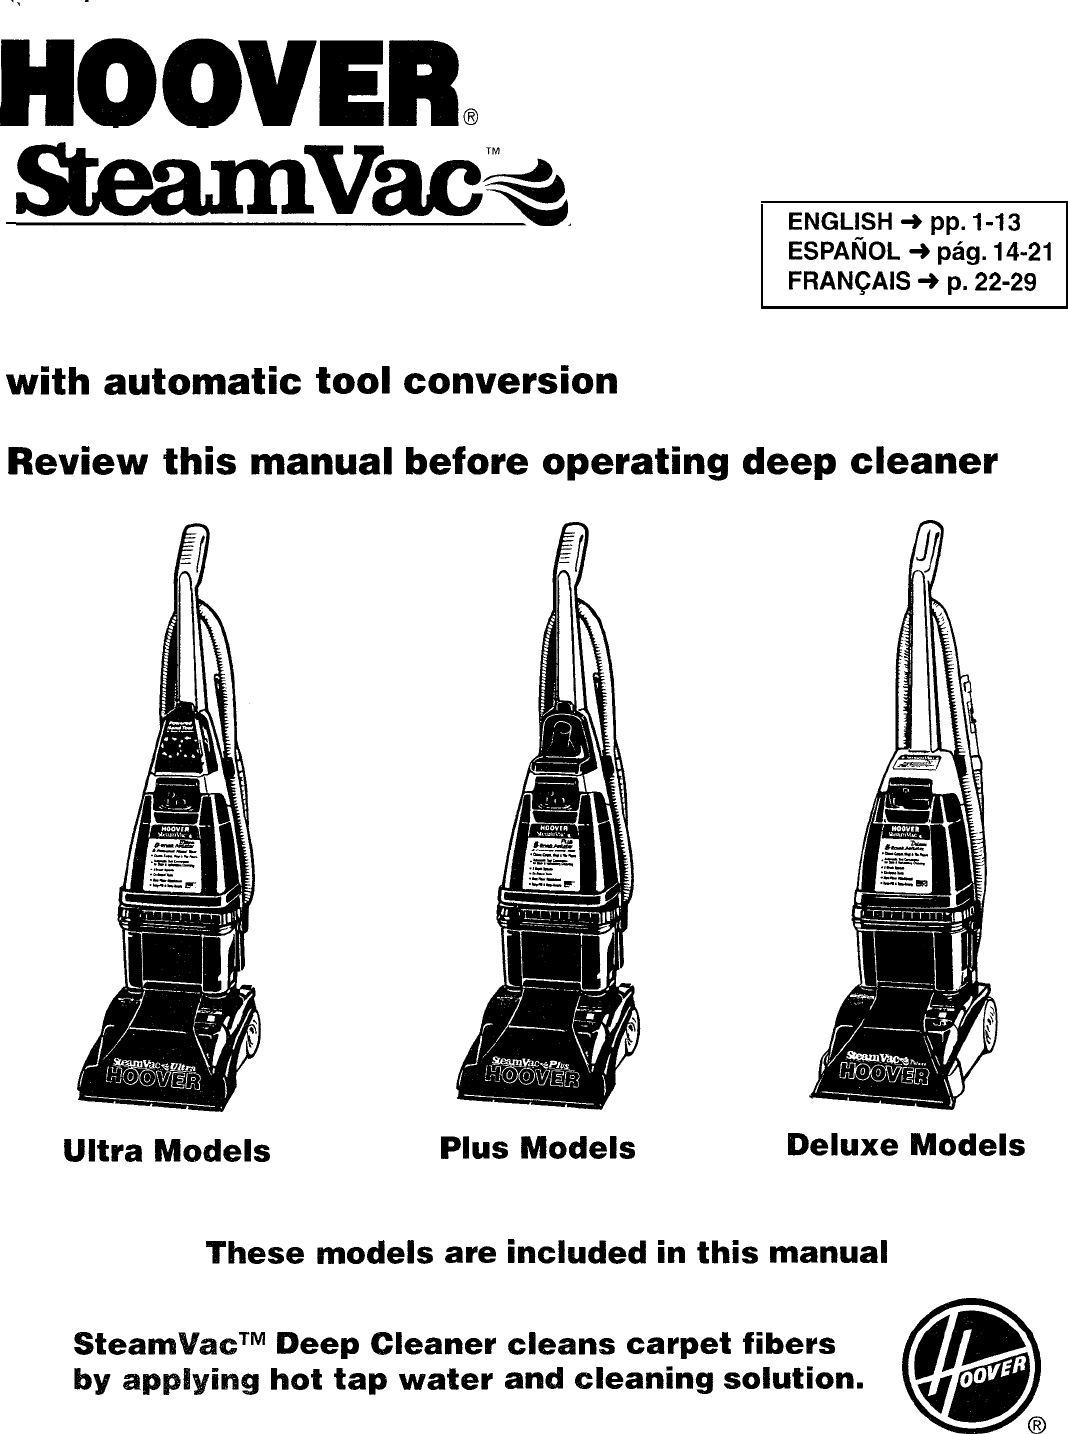 Hoover 12 Steamvac Spinscrub Carpet Cleaner Manual ...